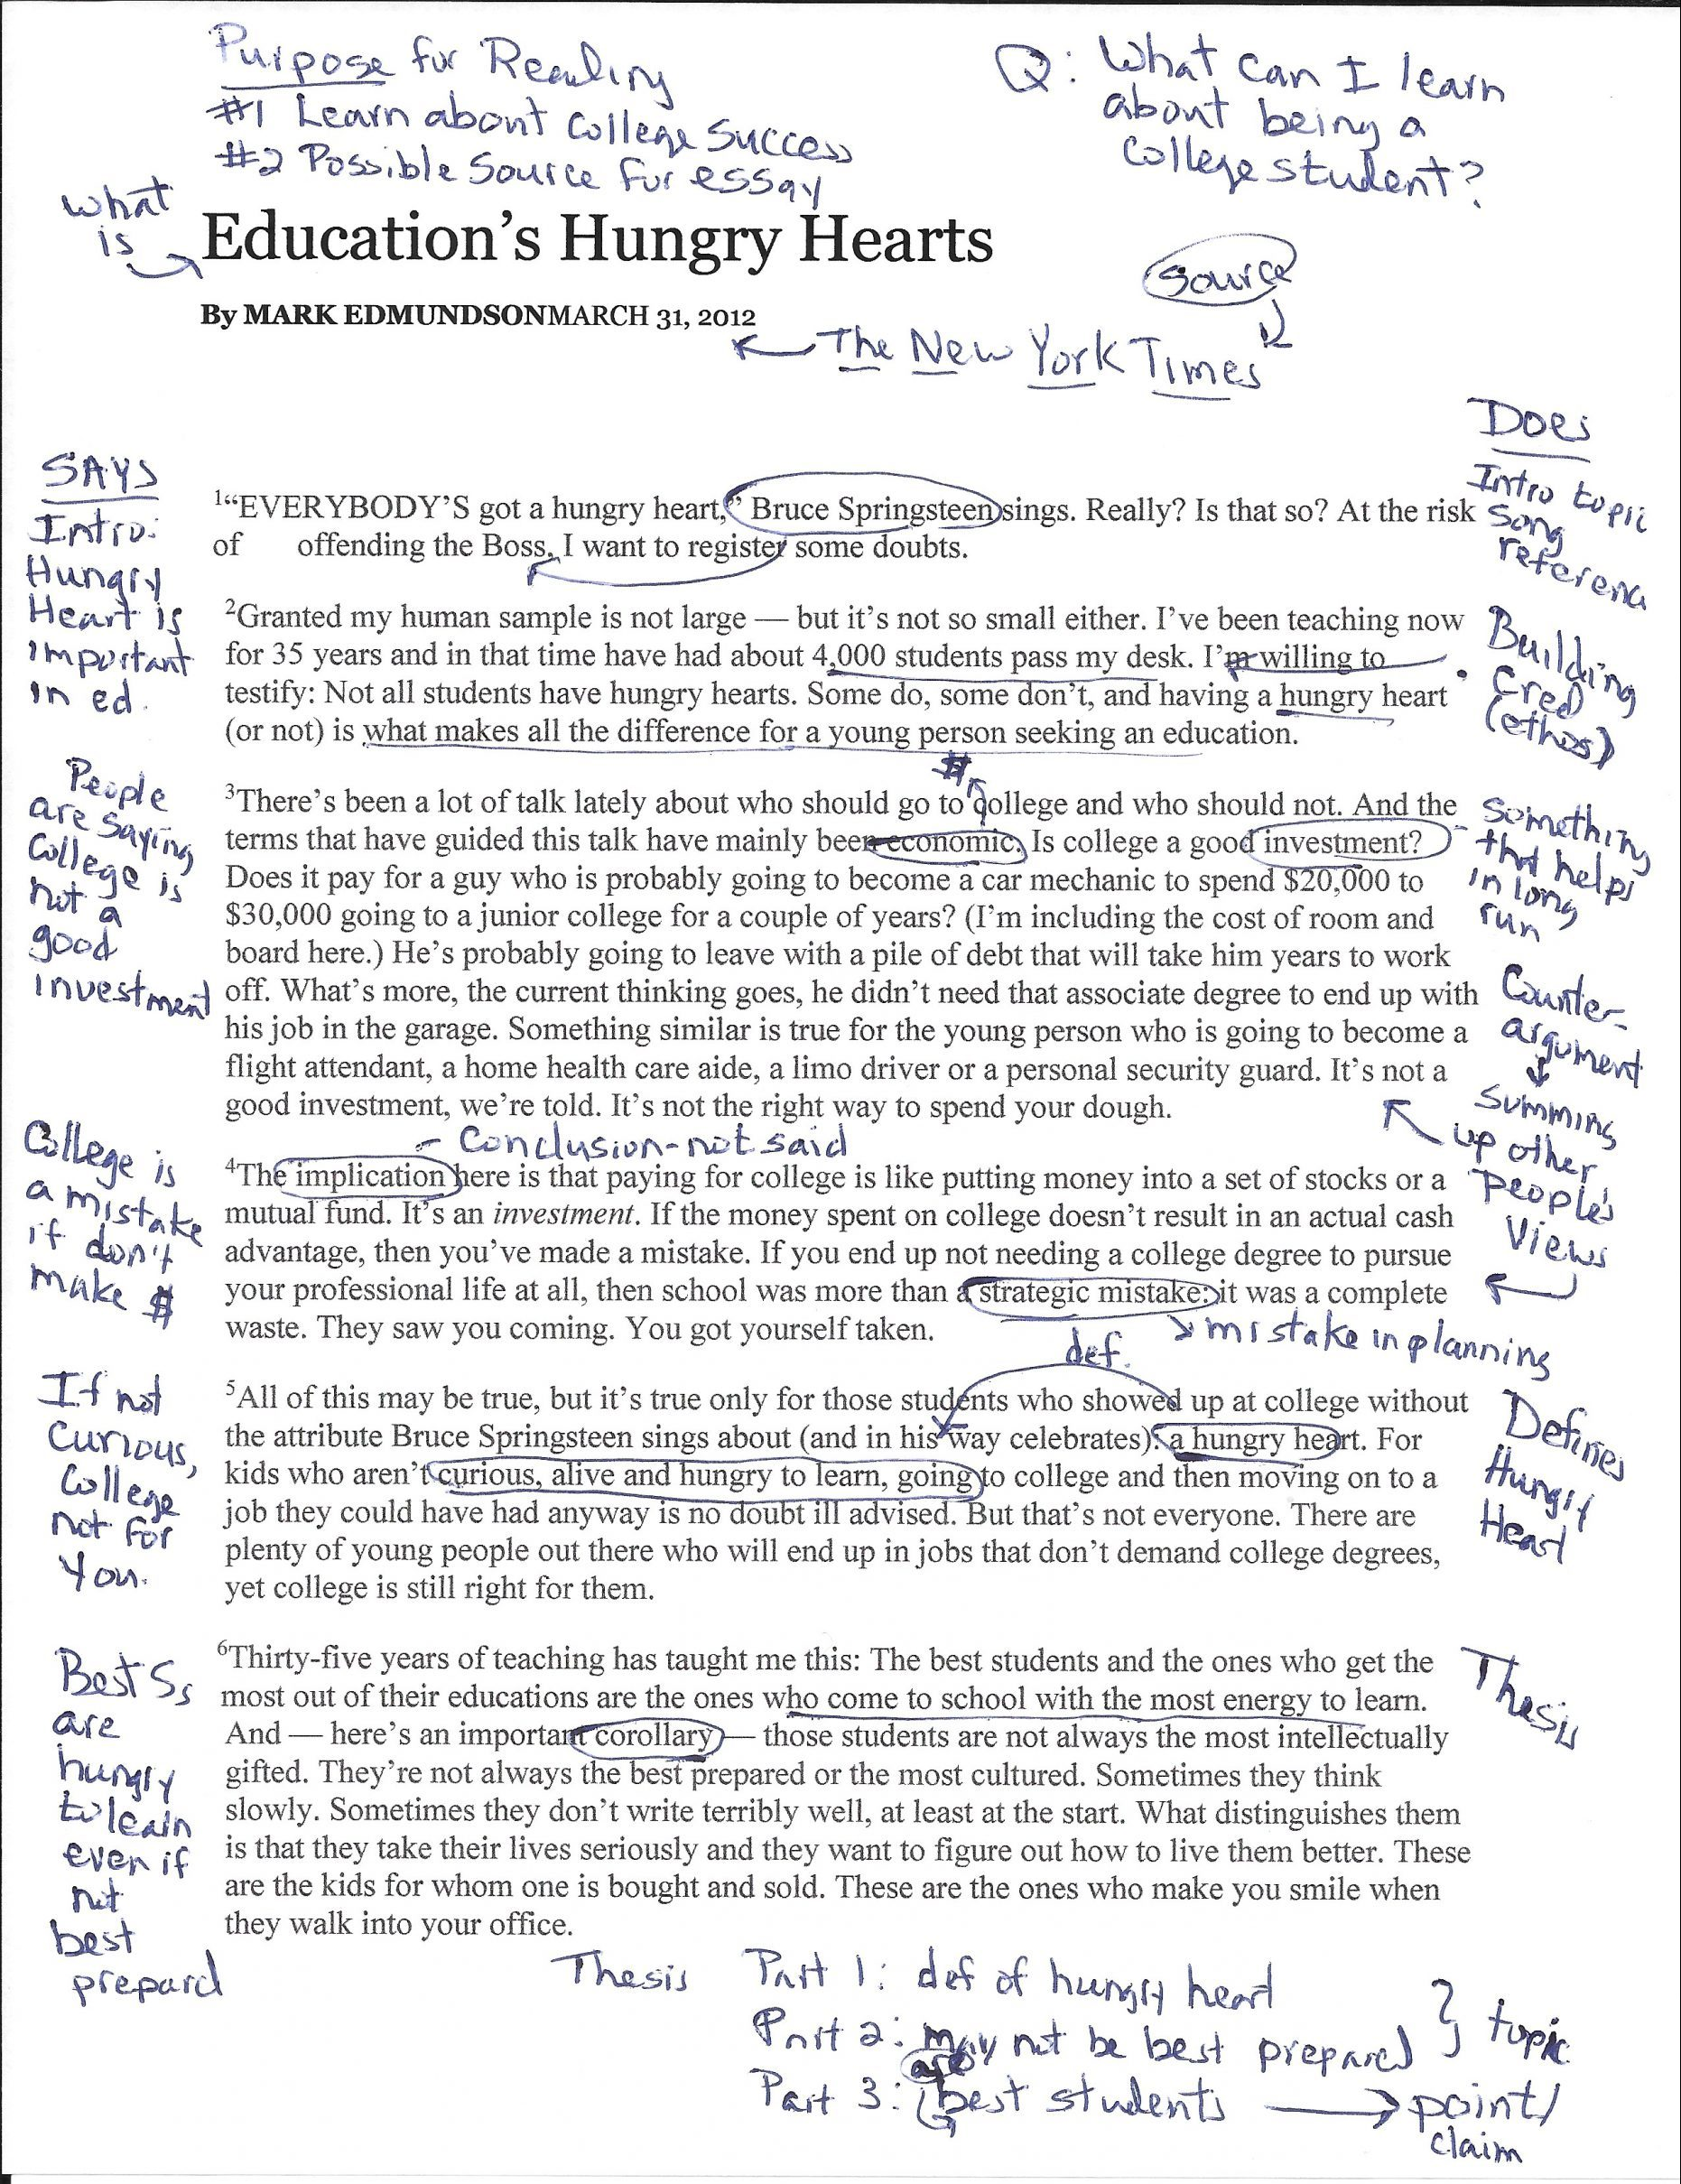 A scanned article titled 'Education's Hungry Hearts.' It is heavily annotated in blue pen.